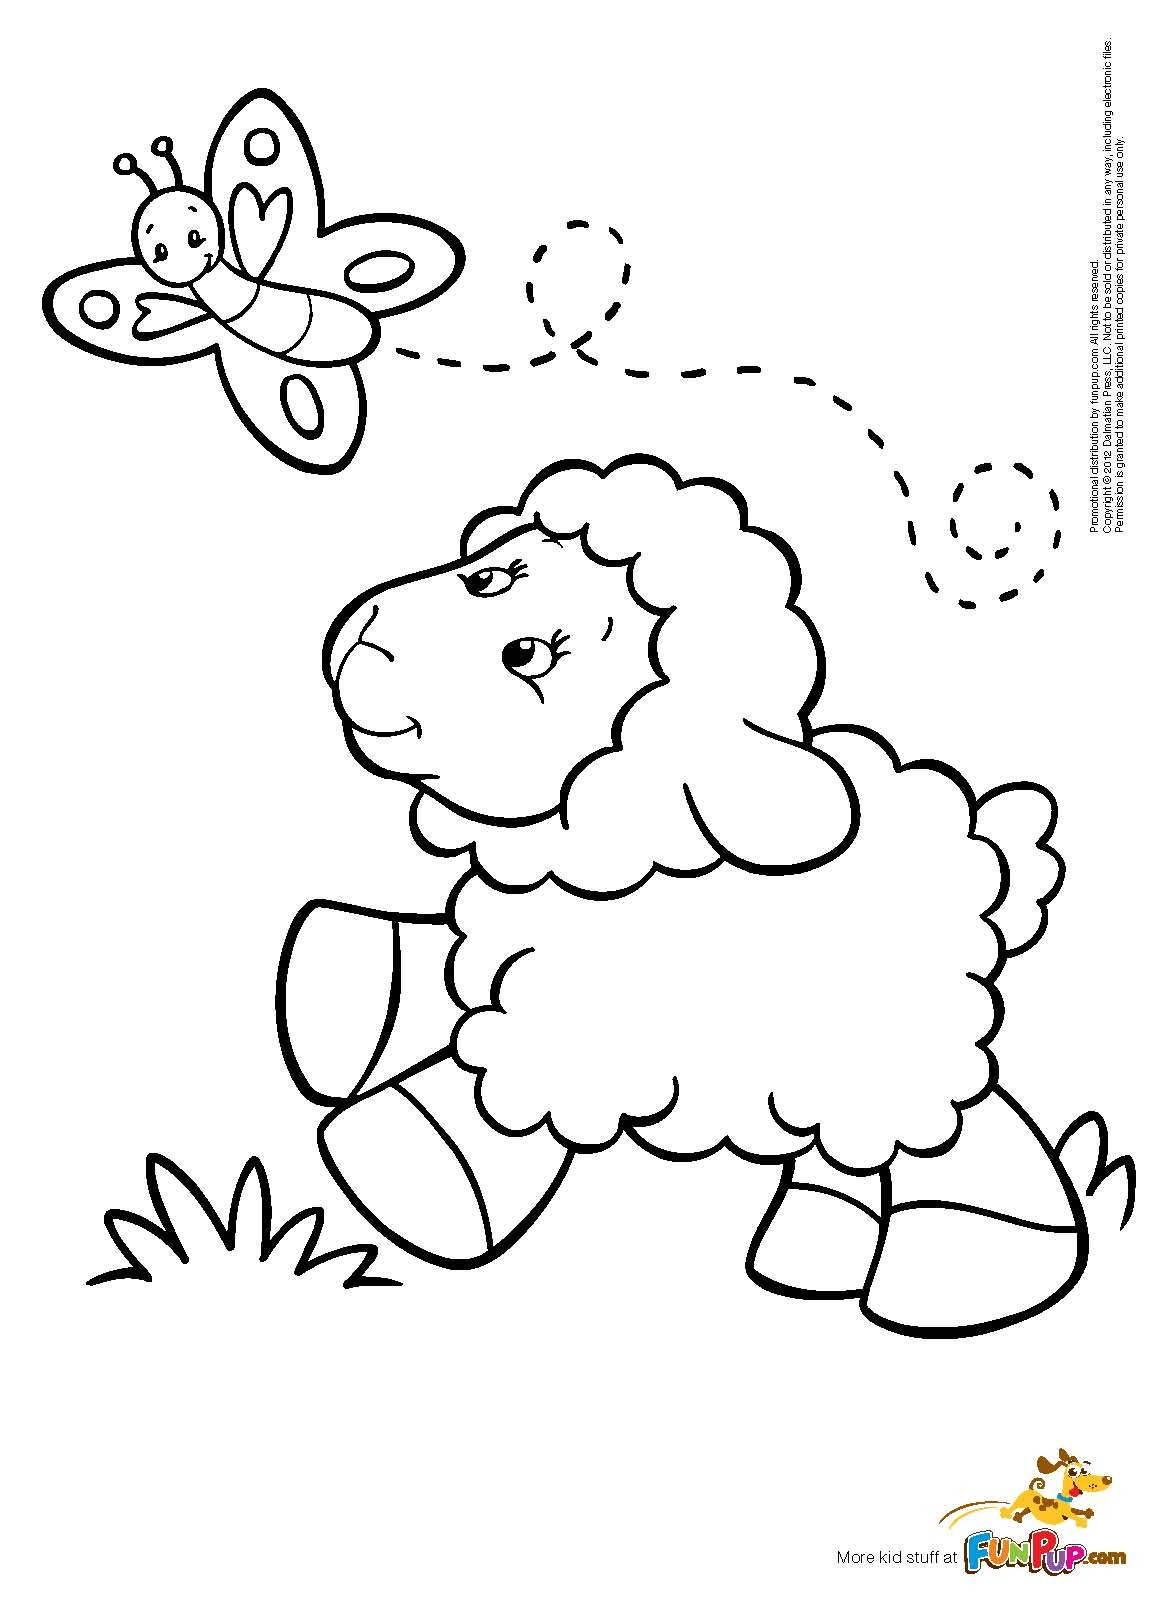 Make Coloring Pages From Photos Free Online